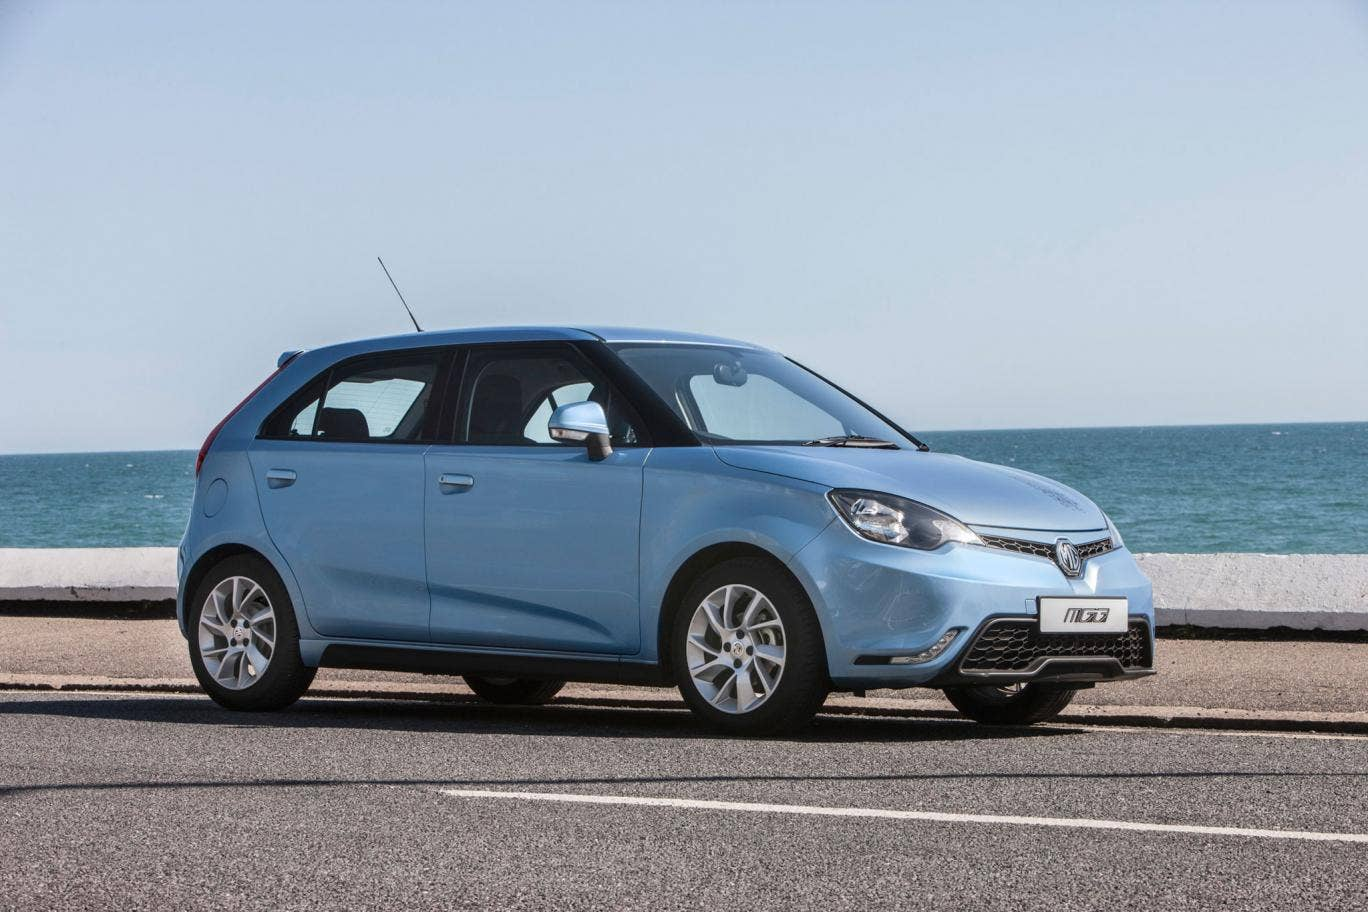 There is a precision, deftness and transparency to the MG3's responses that are rare in a new, mass-market model